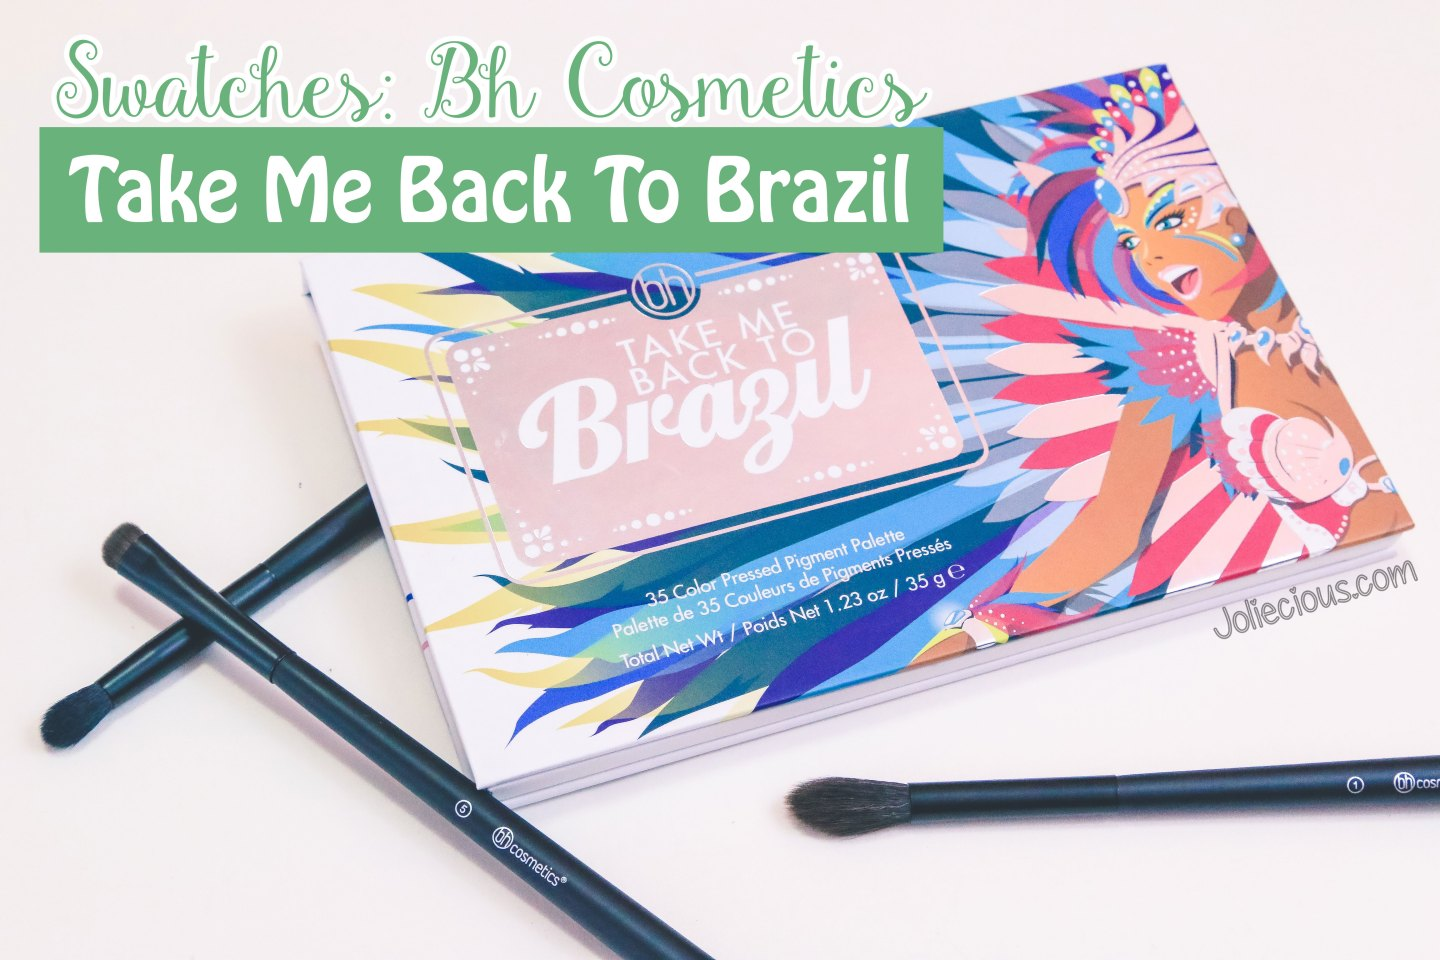 Swatches Bh Cosmestics Take Me Back To Brazil Palette Joliecious